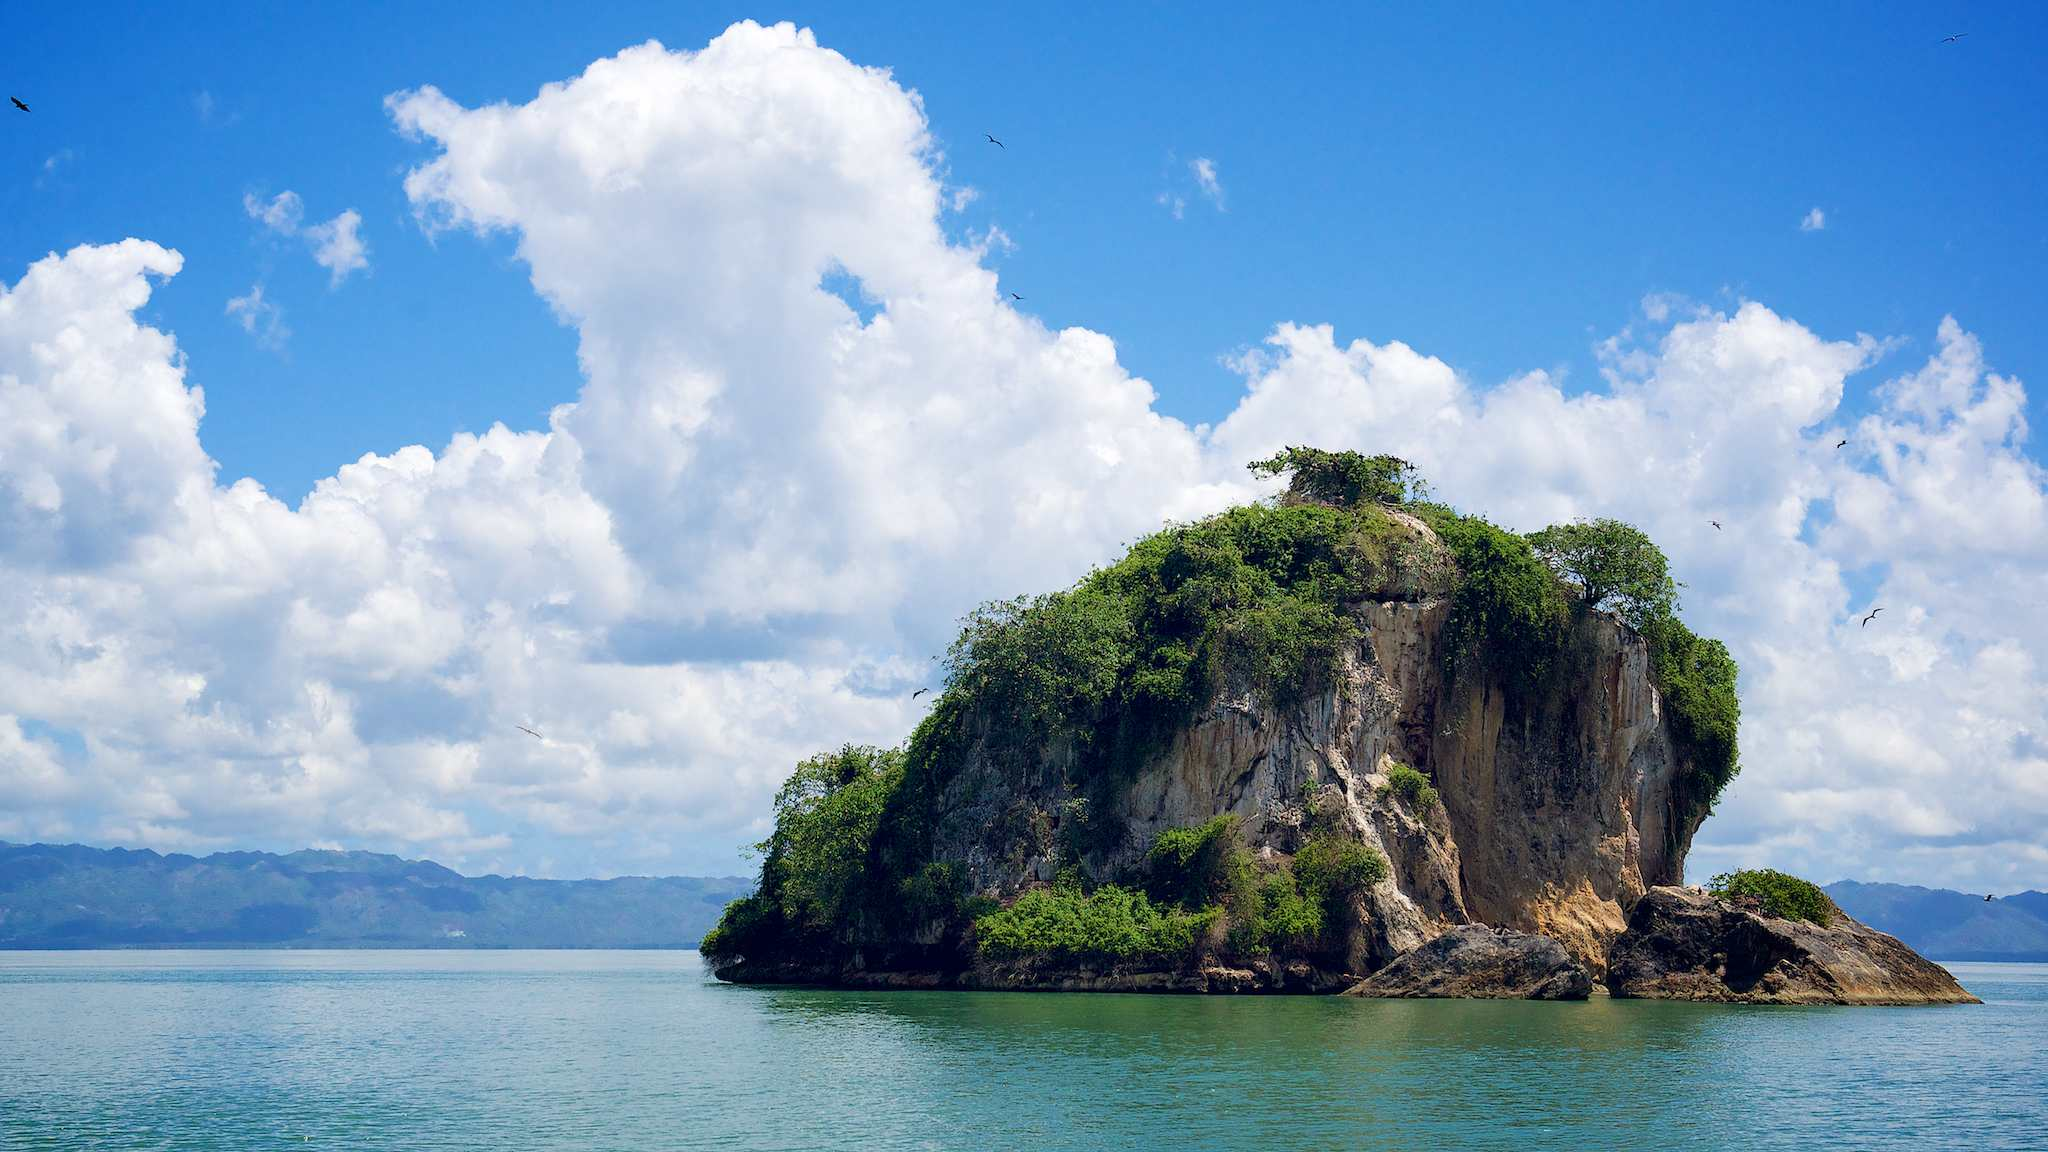 Los Haitises National Park island with birds by Patrick Bennett